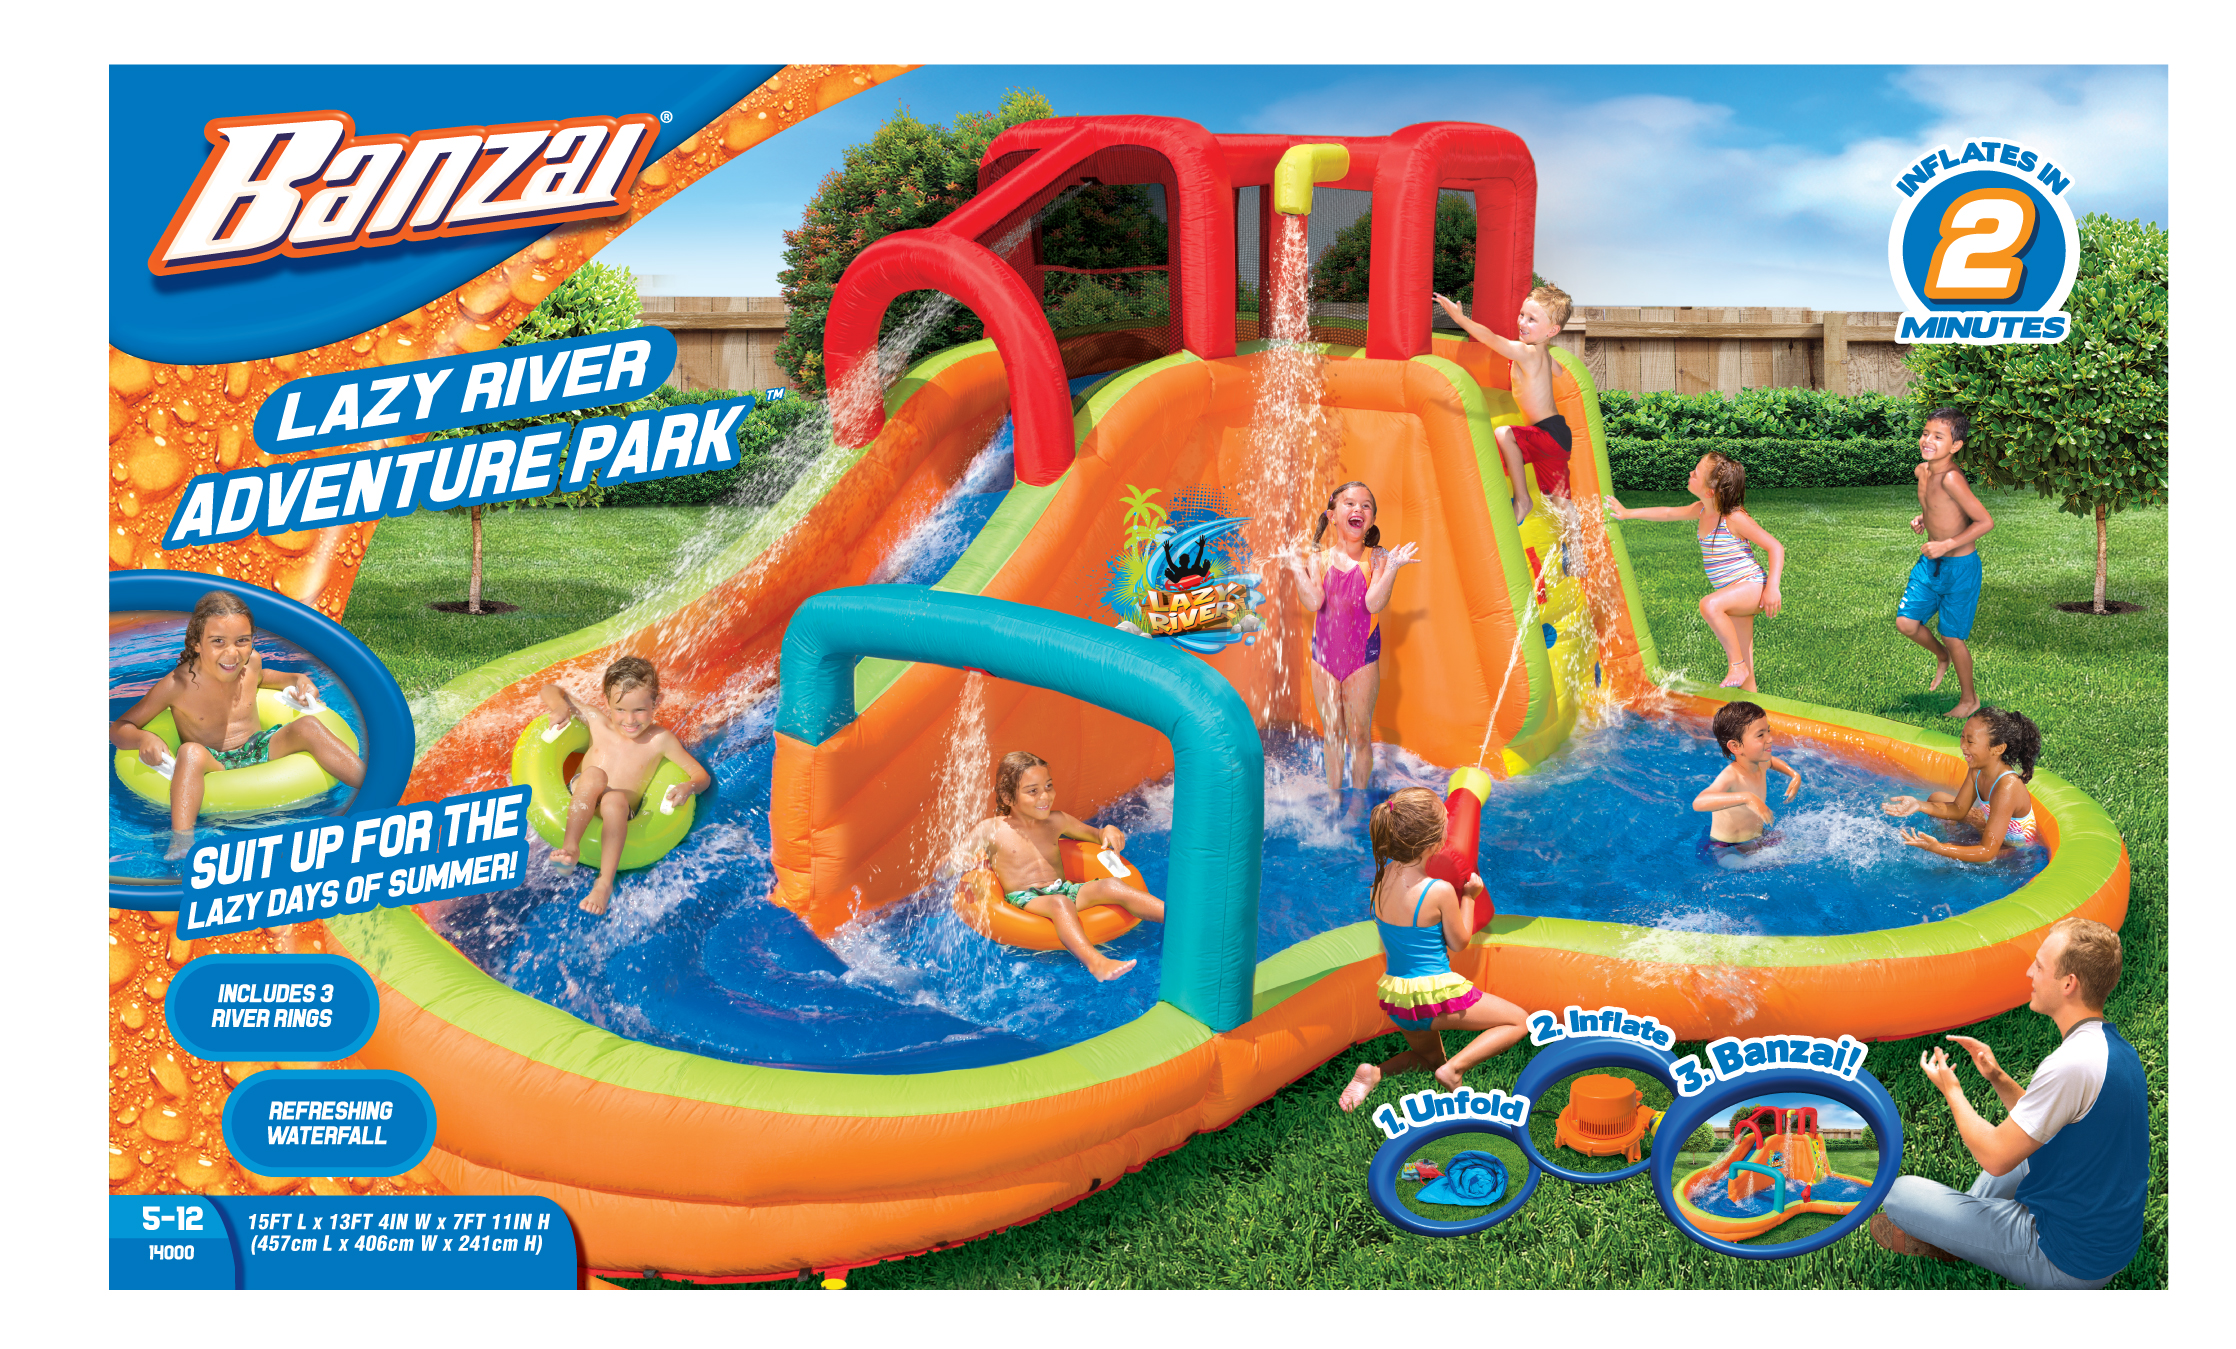 Banzai Lazy River Adventure Park (Backyard Inflatable Waterslide with Sprinkler, Cannon and Lagoon Splash Pool) by Banzai